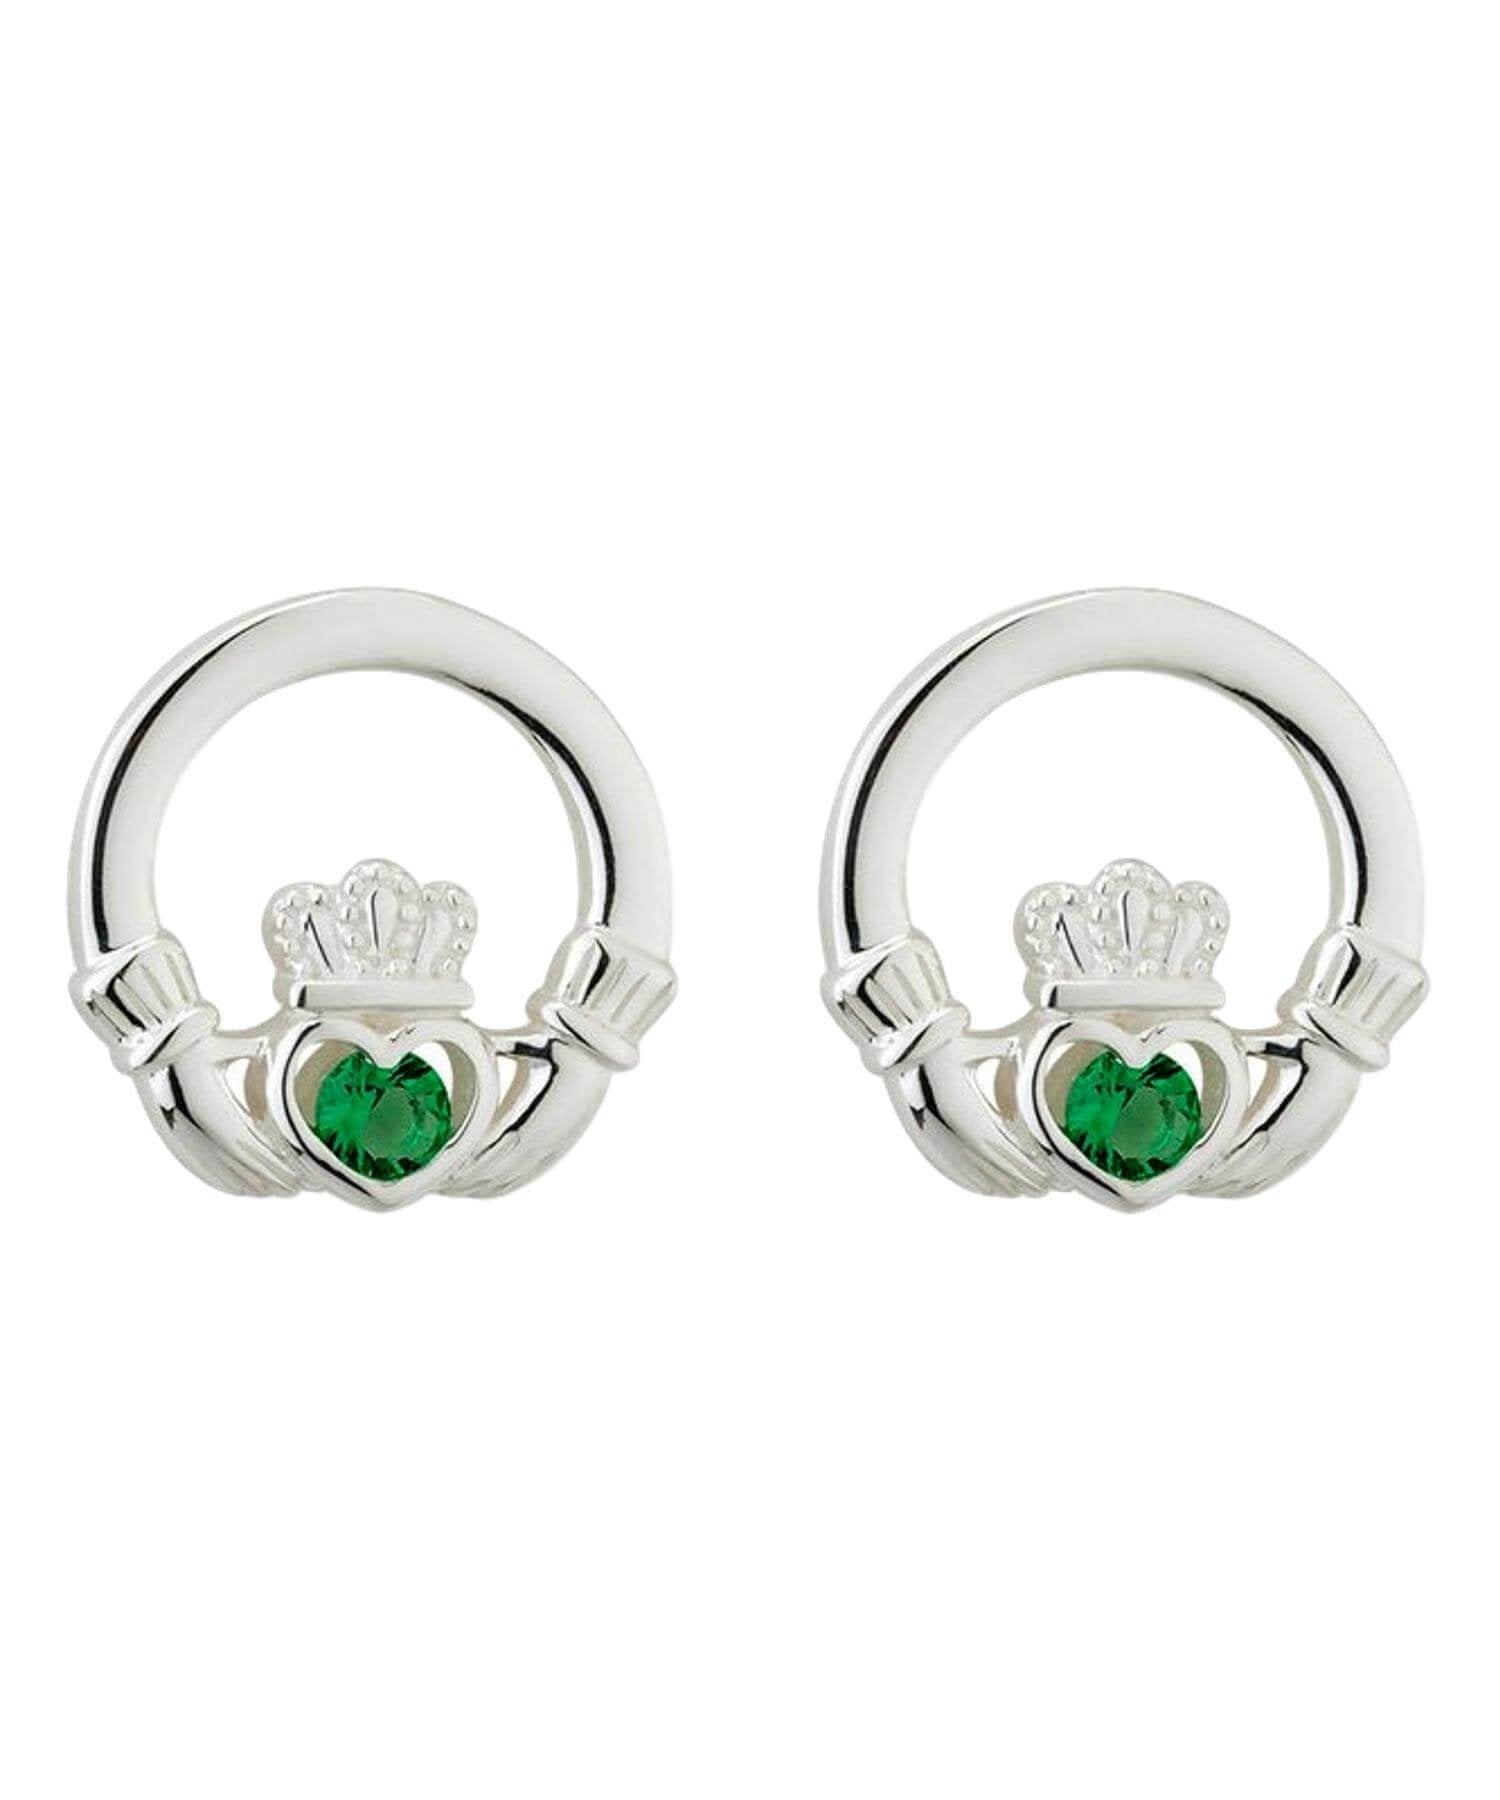 Green Crystal Claddagh Earrings Solvar Celtic Jewellery